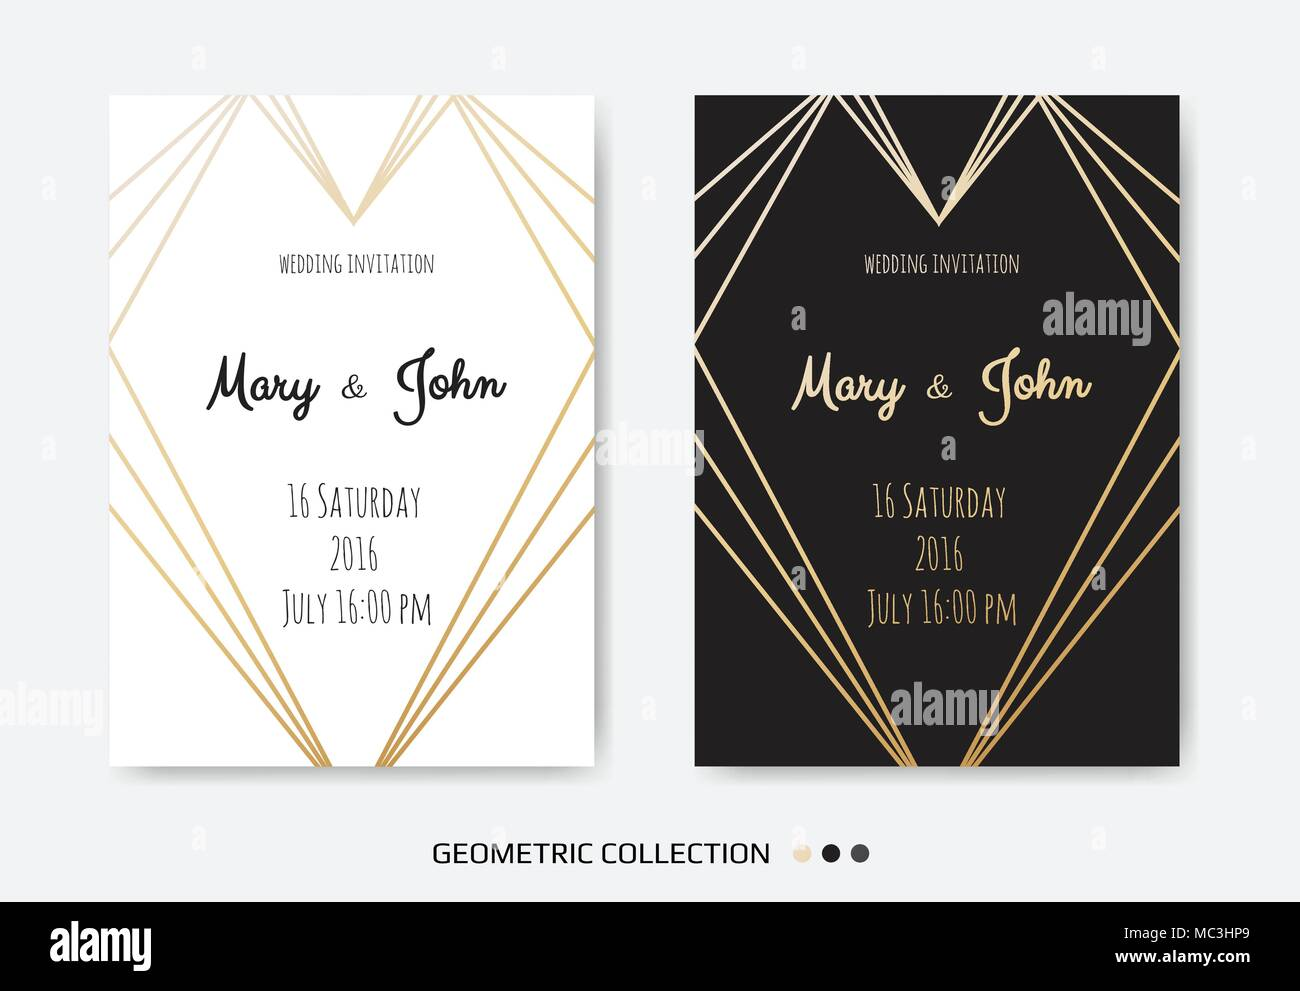 Wedding invitation invite card design with geometrical art lines wedding invitation invite card design with geometrical art lines gold foil border frame vector modern geometric abstract template layout stopboris Choice Image